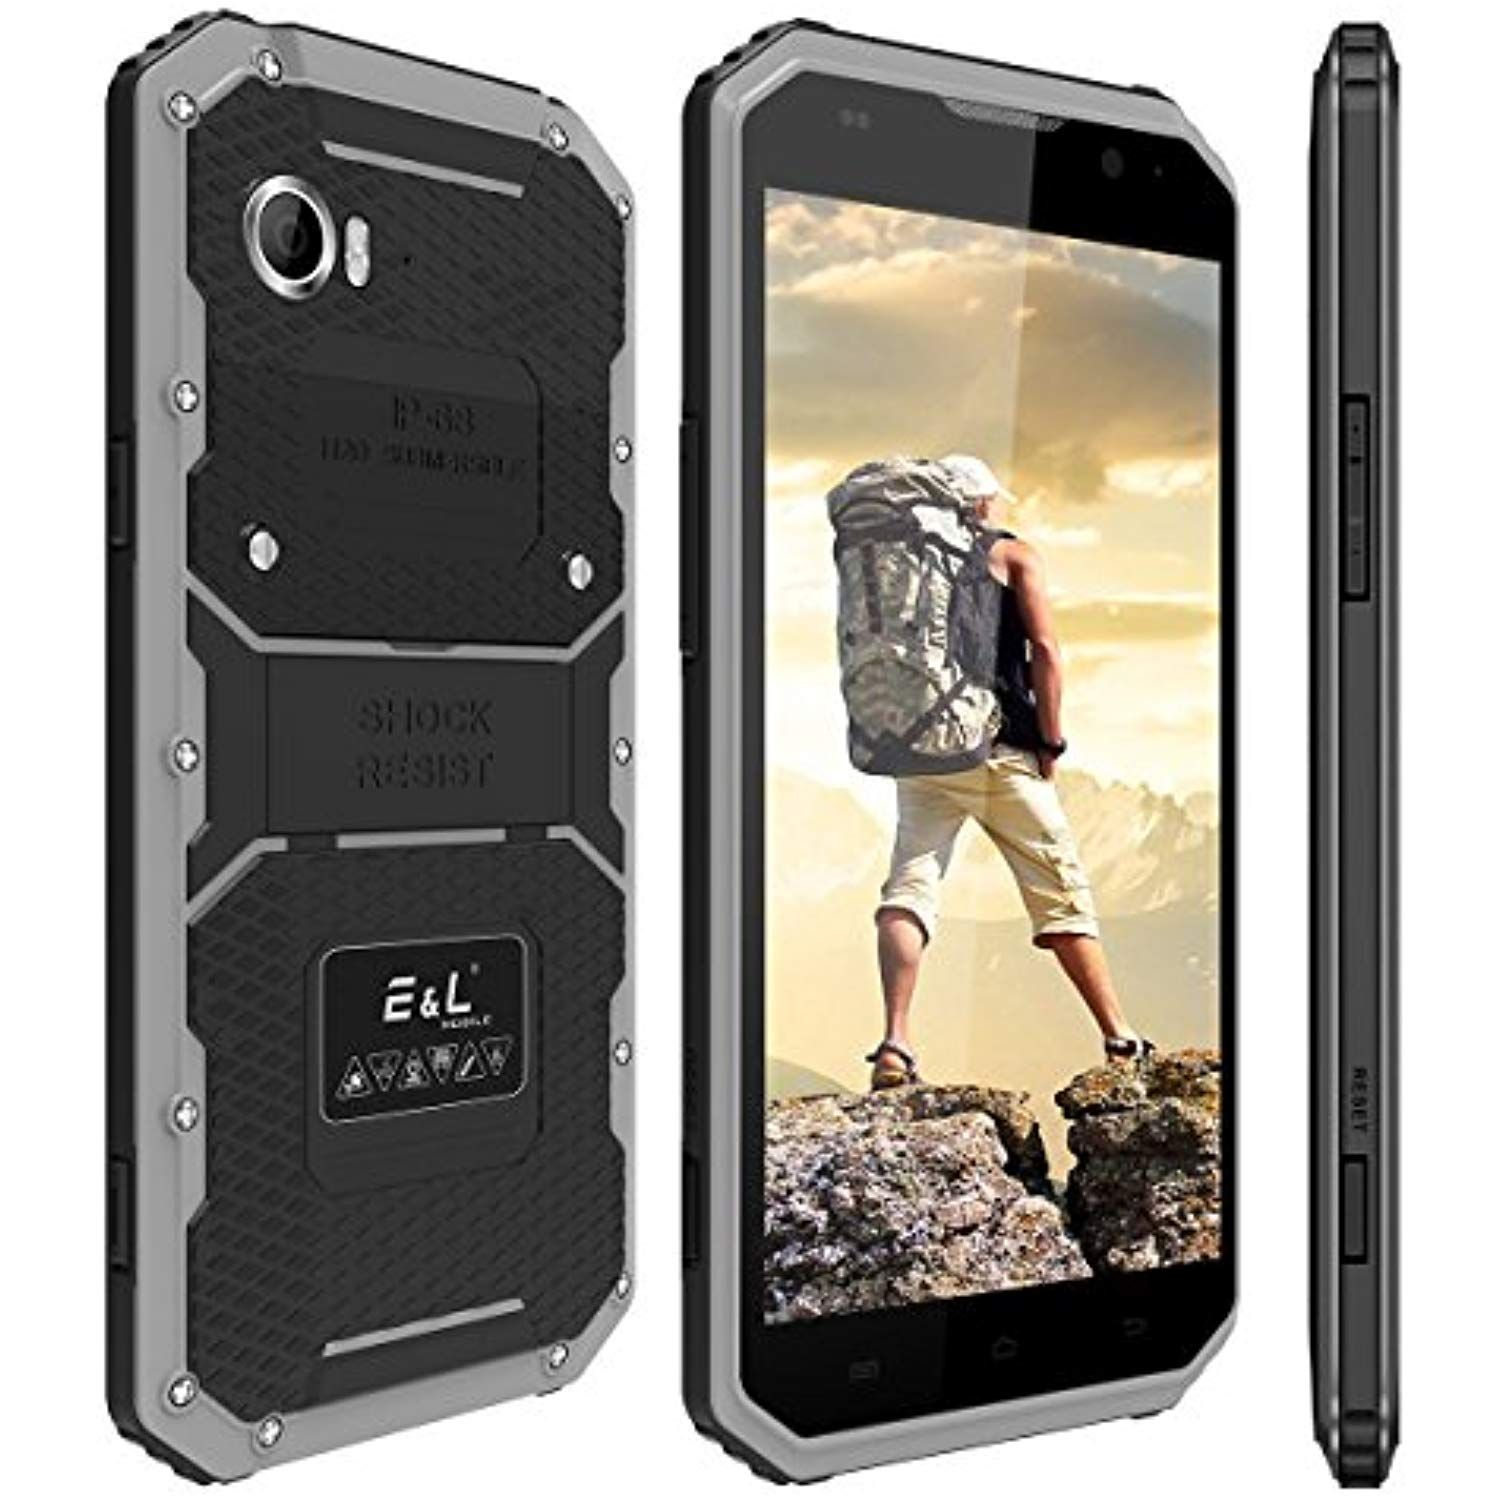 Eandl W9 4g Lte Rugged Smartphone Unlocked 6 0 Inch Fhd Screen Ip68 Waterproof Dustproof Shockproof 16gb 2gb Android Camera 8mp Military Grade Gsm